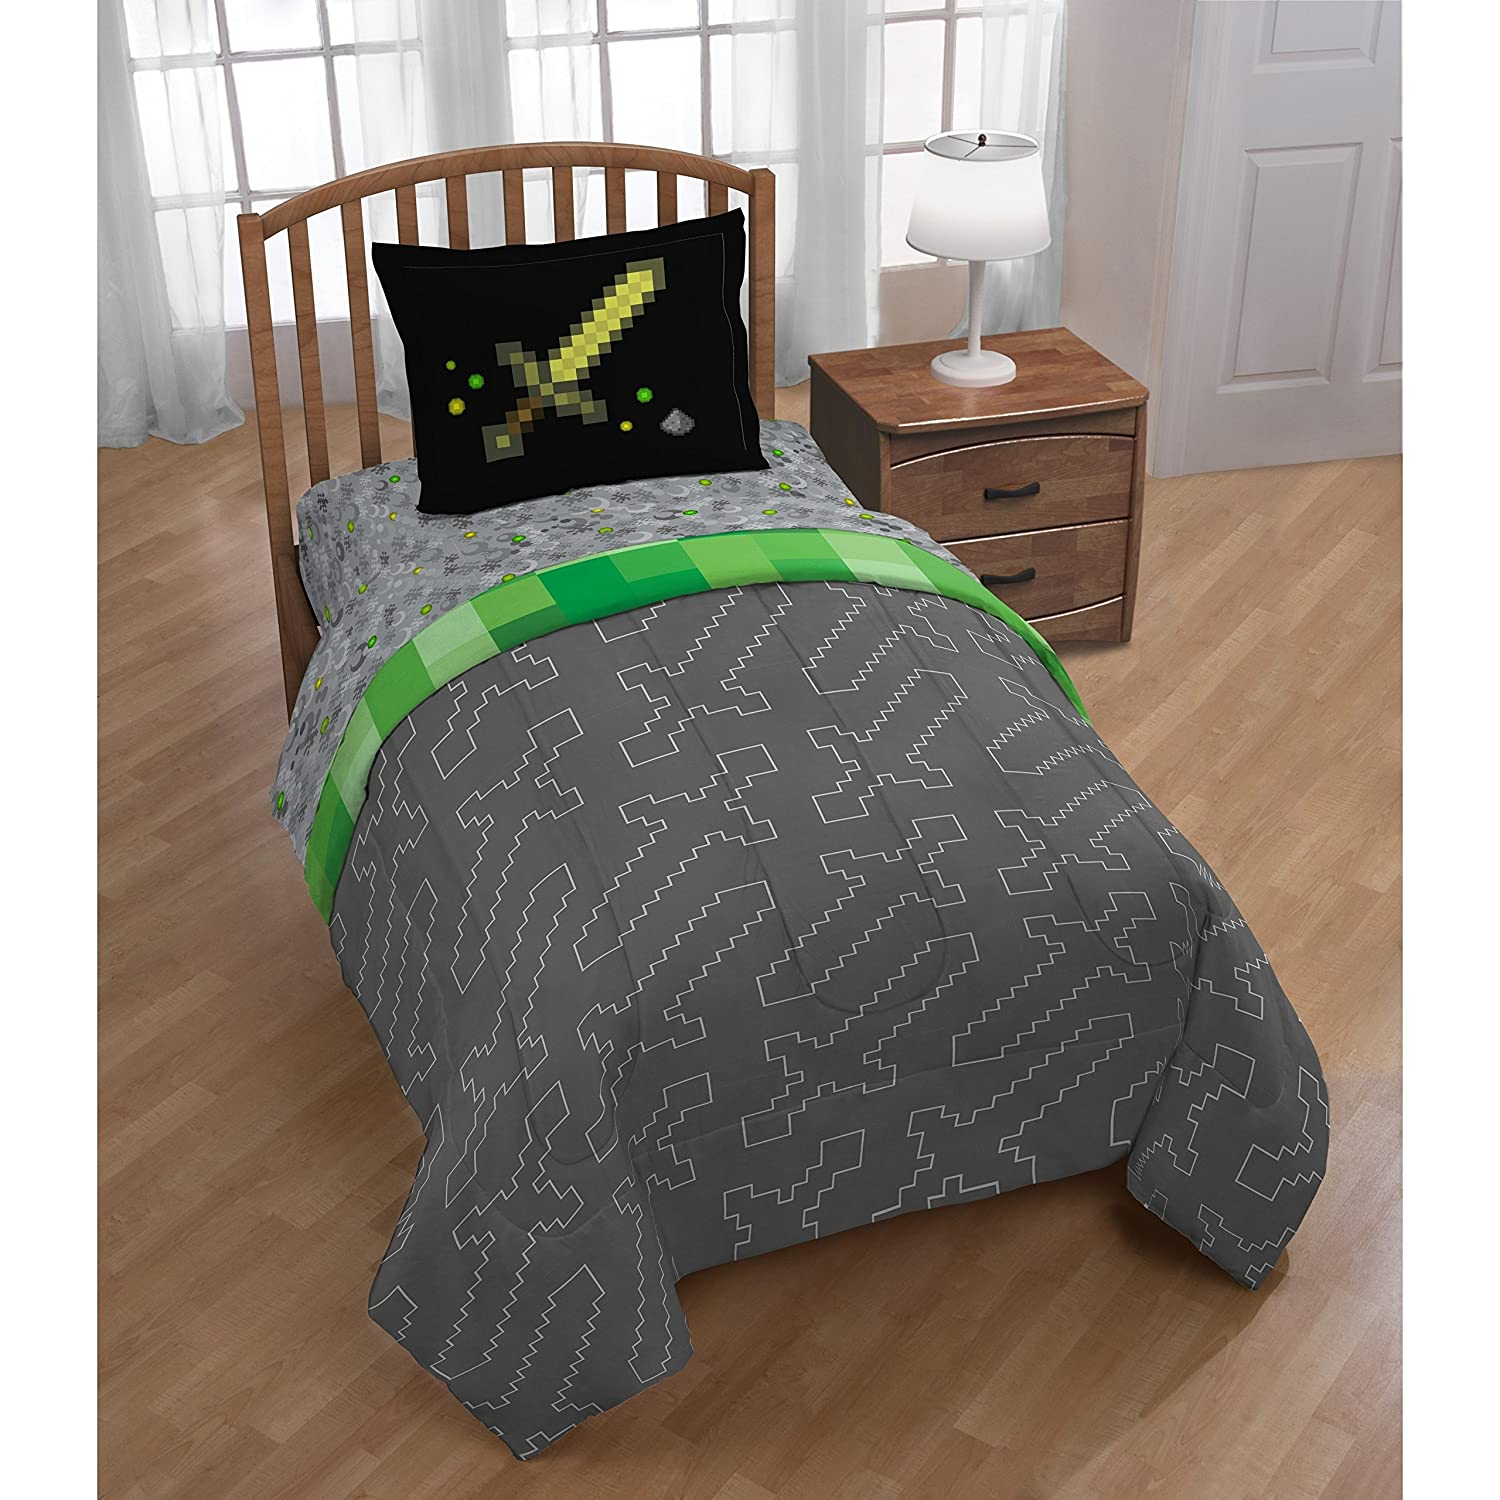 2 Piece Kids Black Grey Green Mojang Minecraft Comforter Twin Set, Boys Girls Fun Pixel Games Mine Craft Themed Bedding, Reversible Computer Video Game Buliding Inspired, Polyester